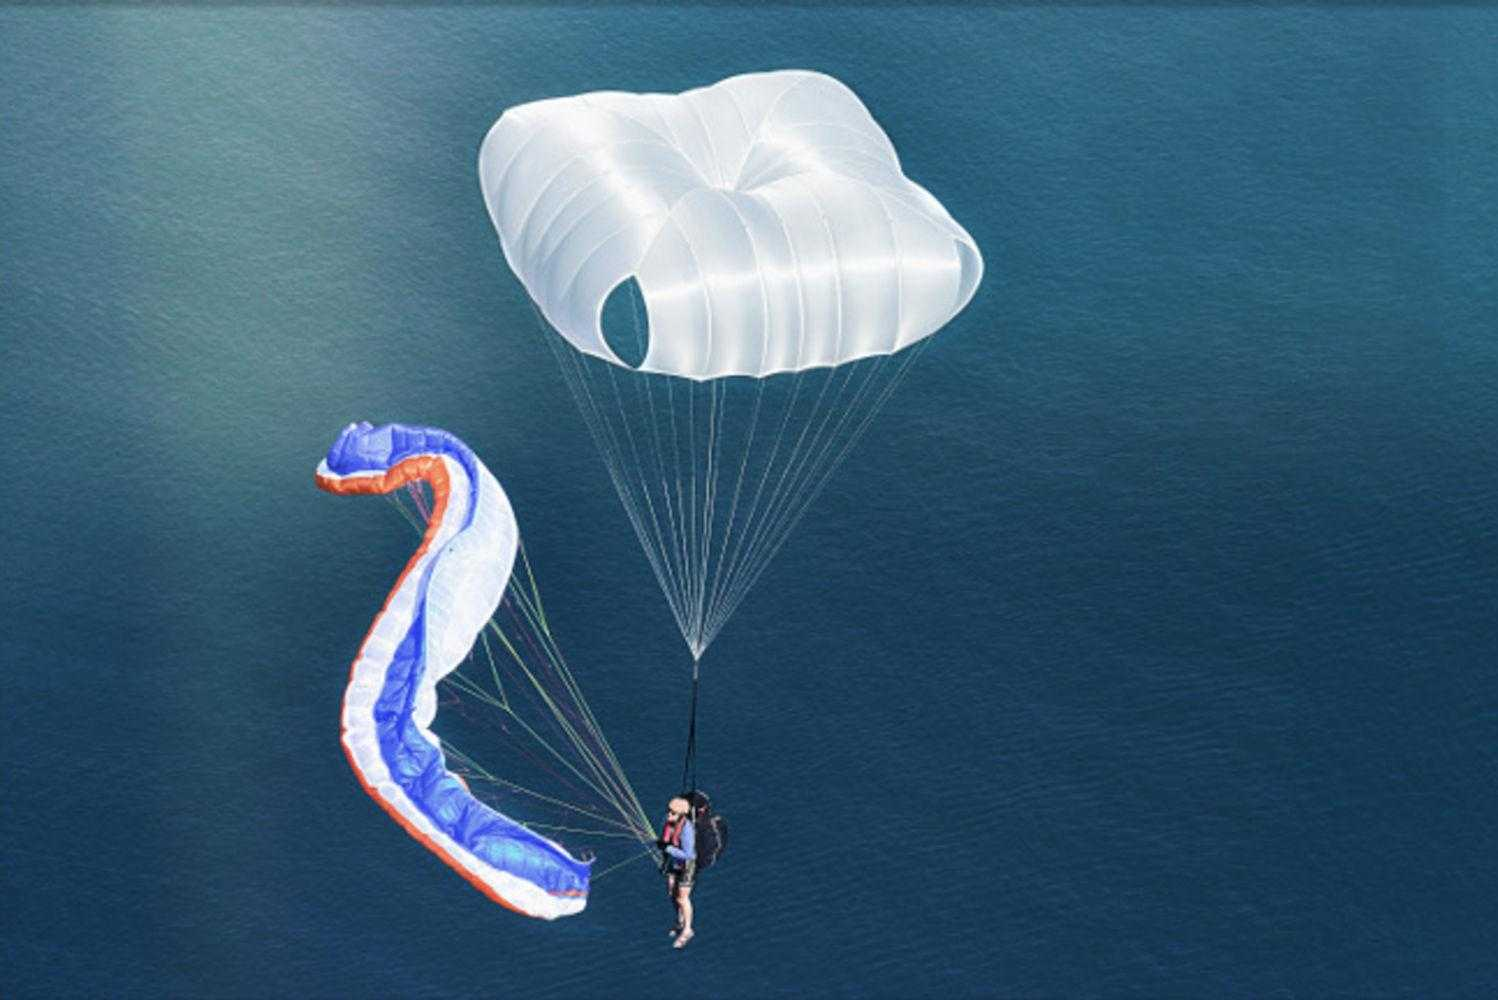 Reserve_parachute_for_Paraglider